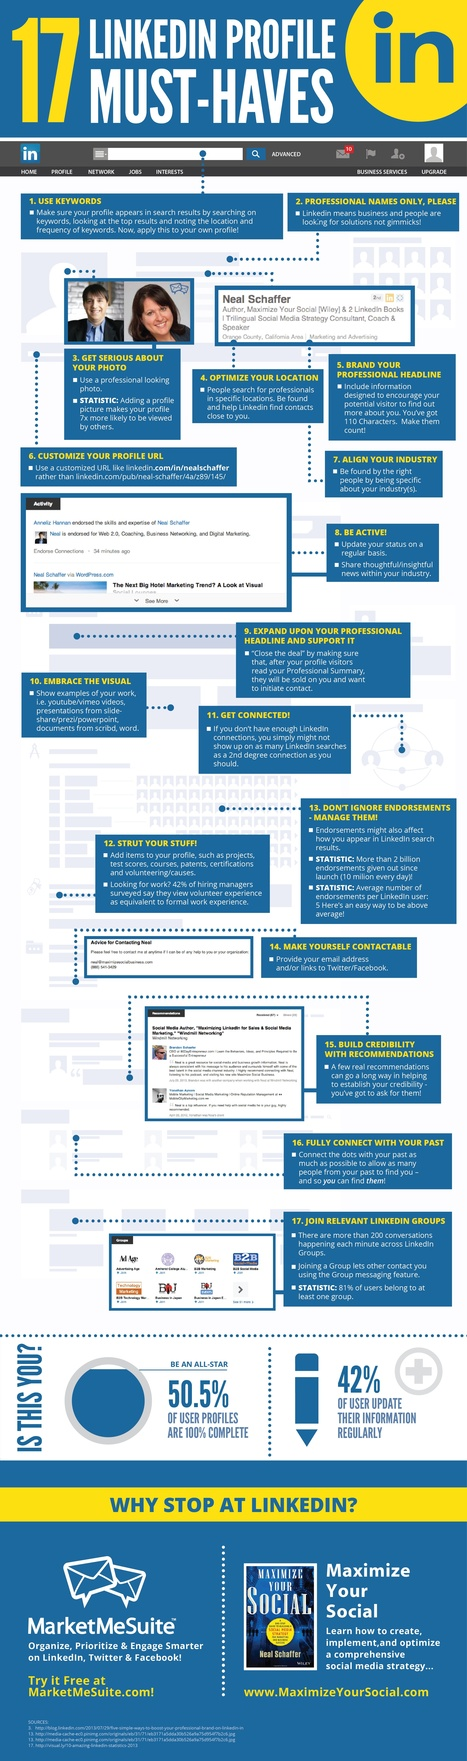 17 Must-Haves for Your LinkedIn Profile [INFOGRAPHIC] | MarketingHits | Scoop.it